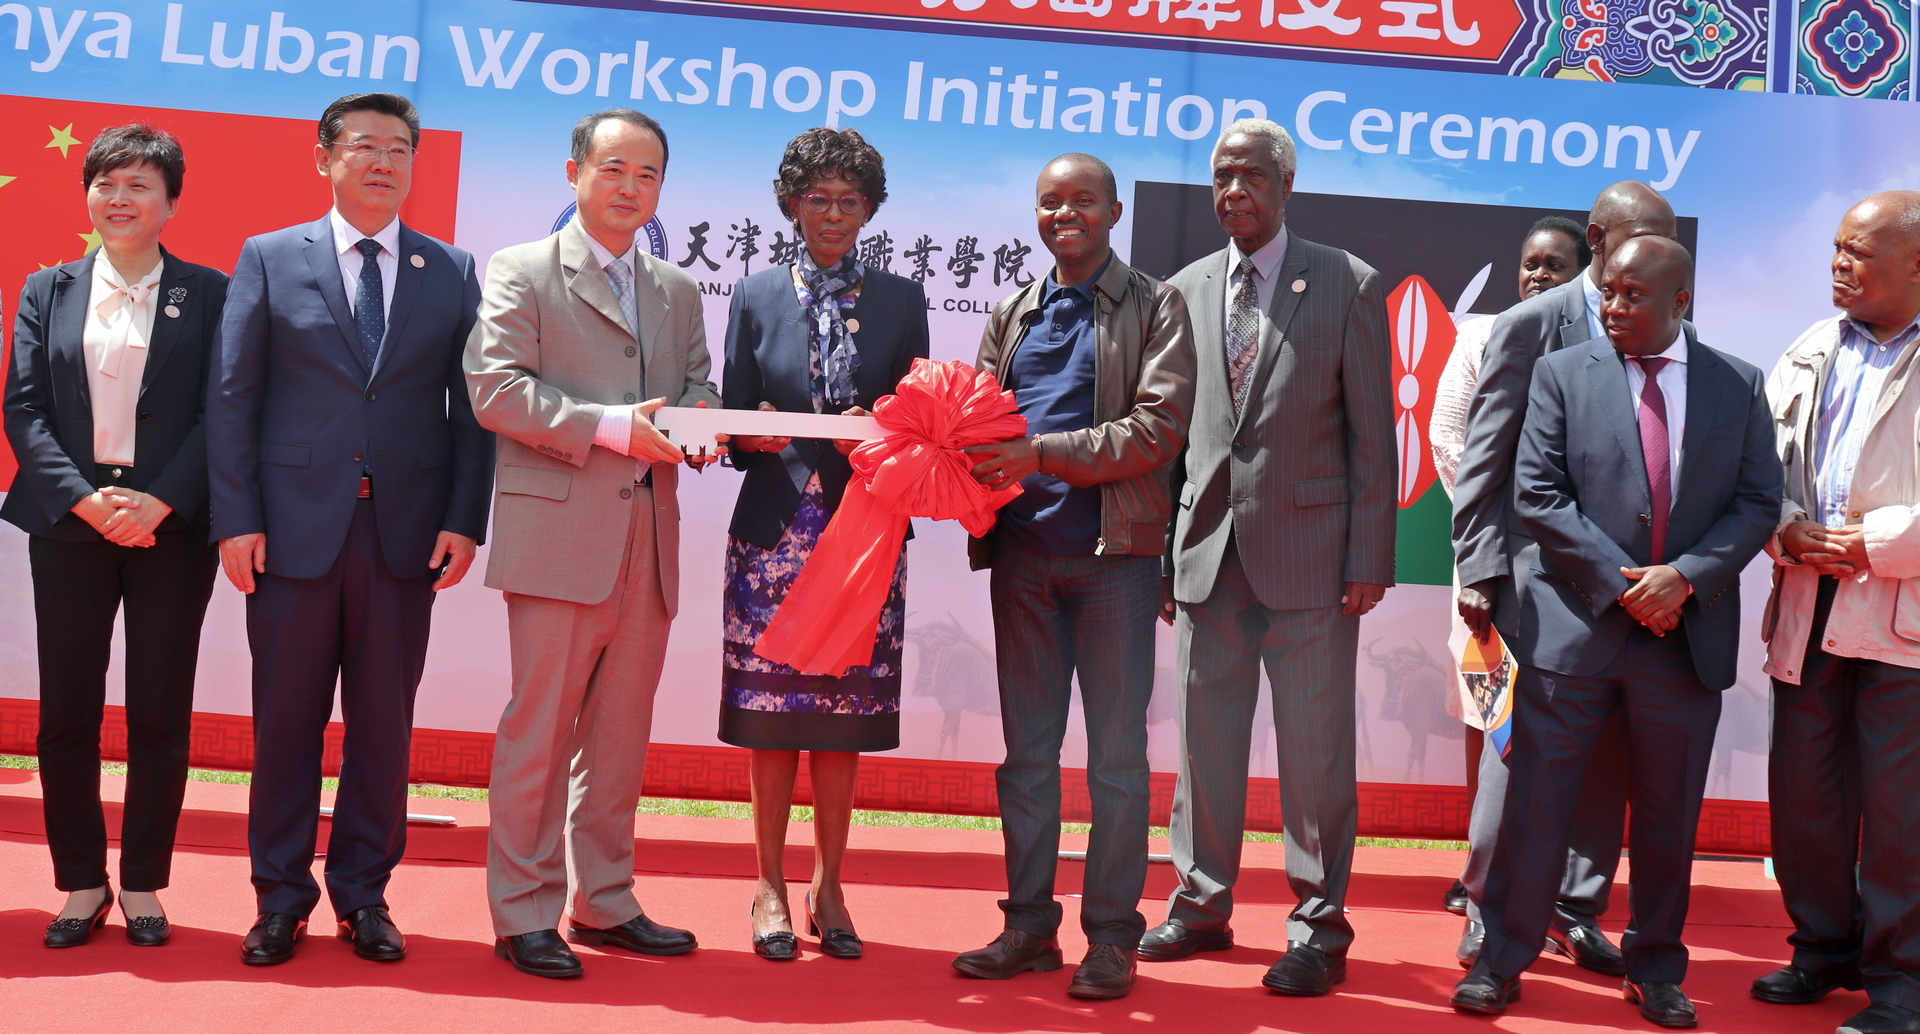 2ND LUBAN WORKSHOP IN AFRICA LAUNCHED AT MACHAKOS UNIVERSITY